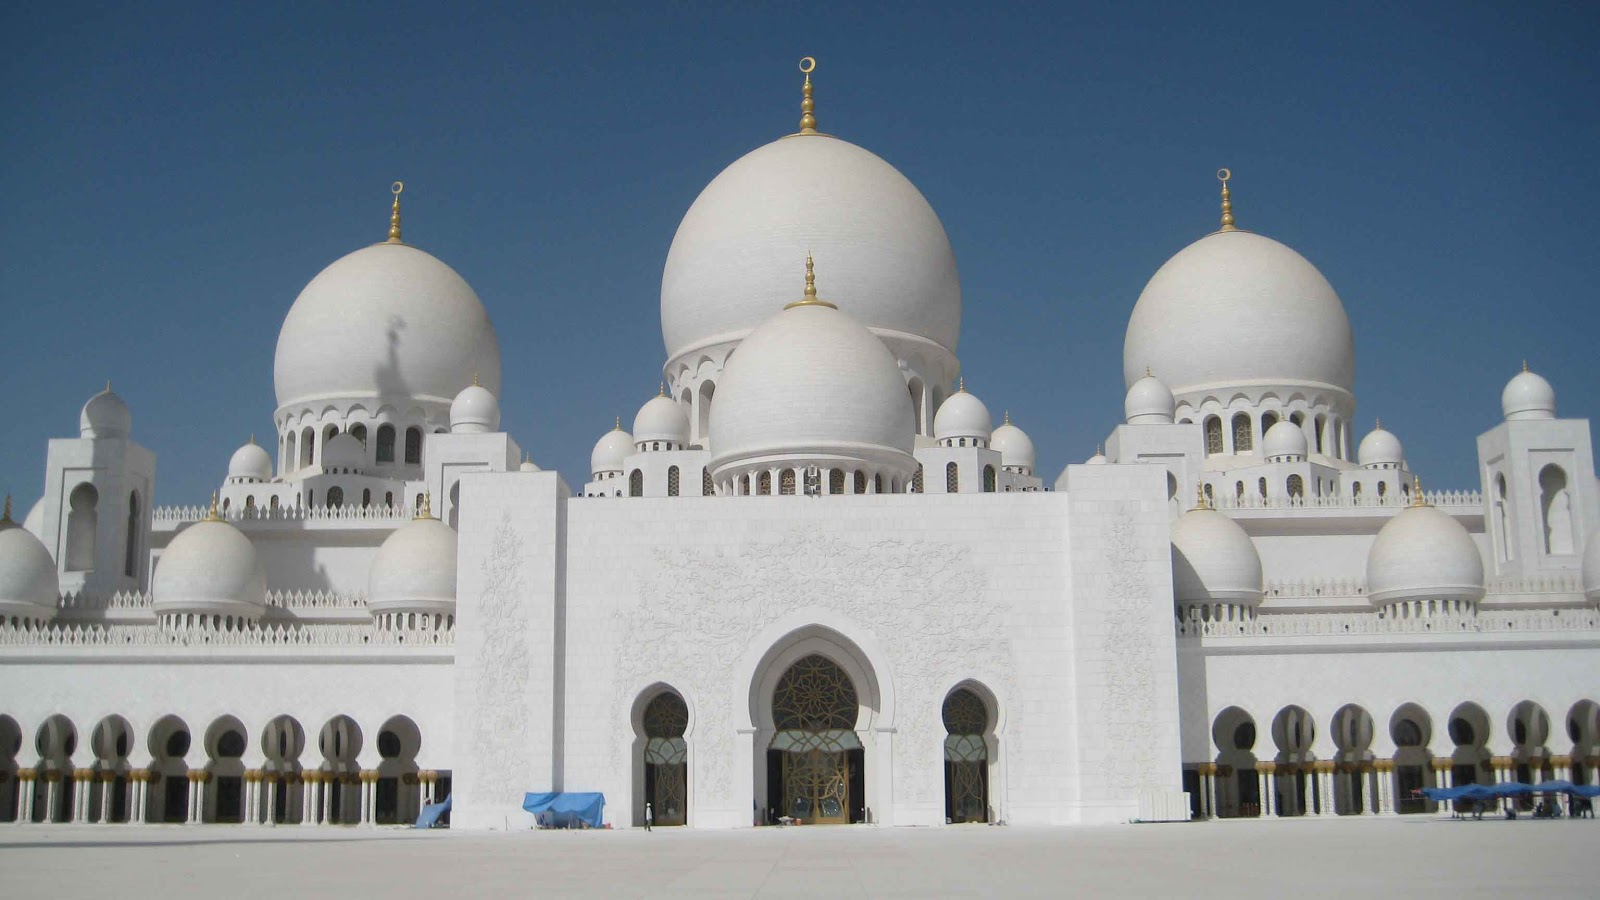 Cool Images Sheikh Zayed Mosque